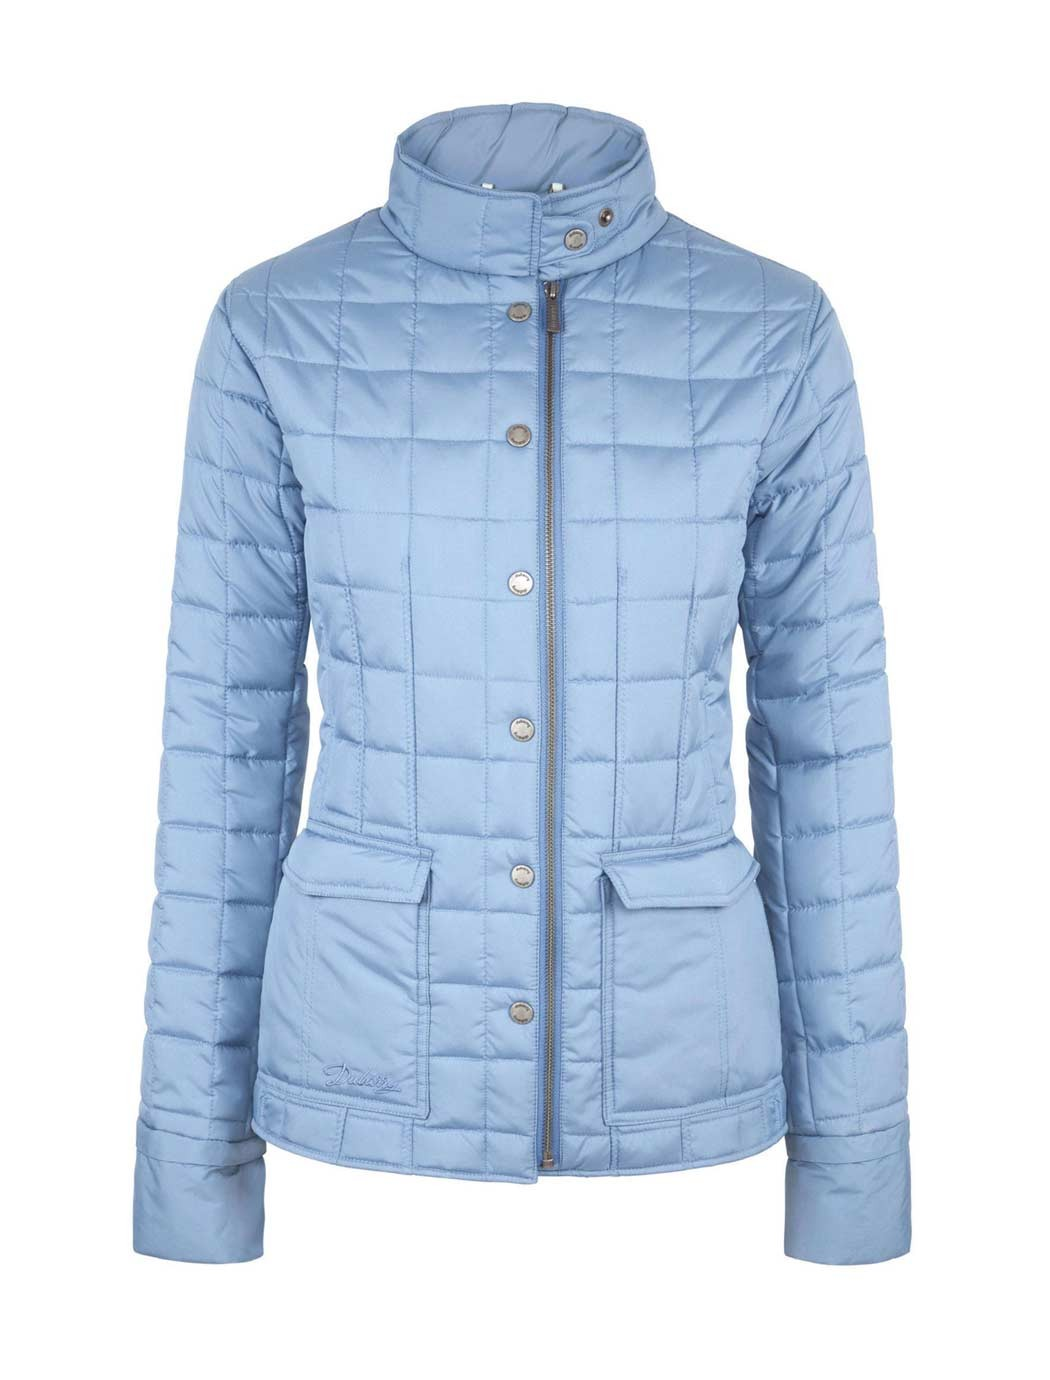 carra-quilt-jacket-slate-blue-dubarry-1 1